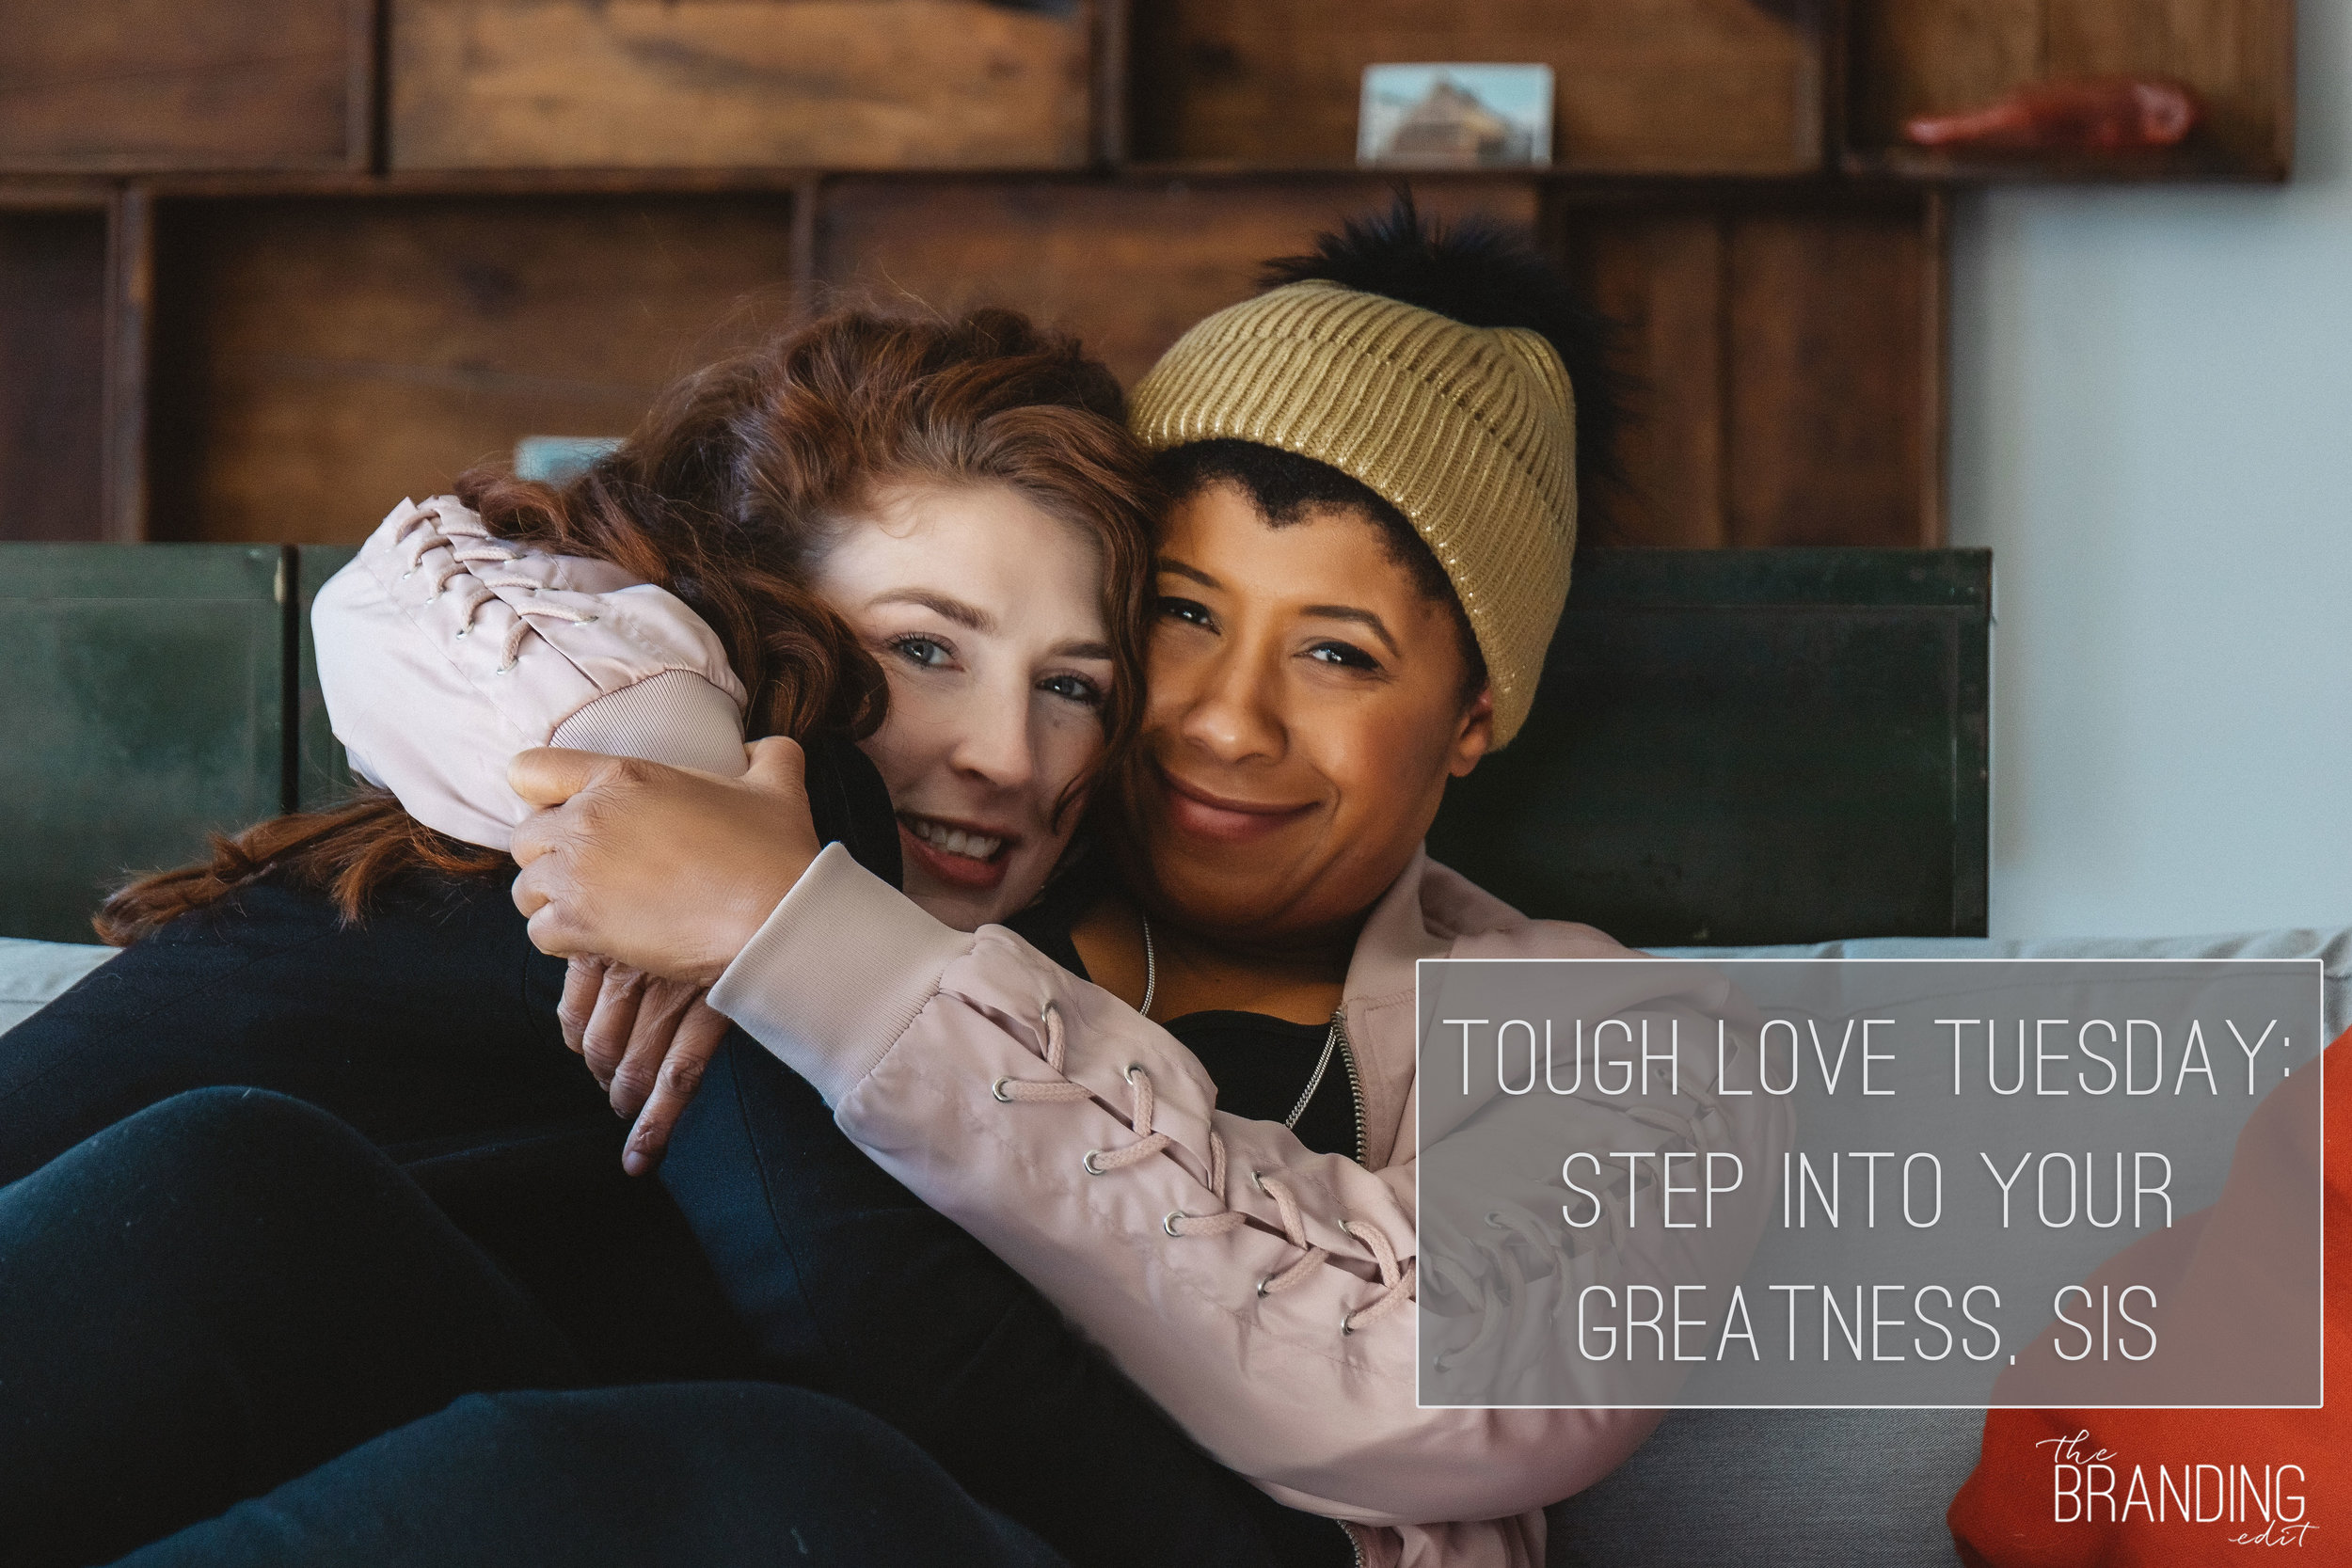 Tough-Love-Tuesday--Step-Into-Your-Greatness,-Sis.jpg